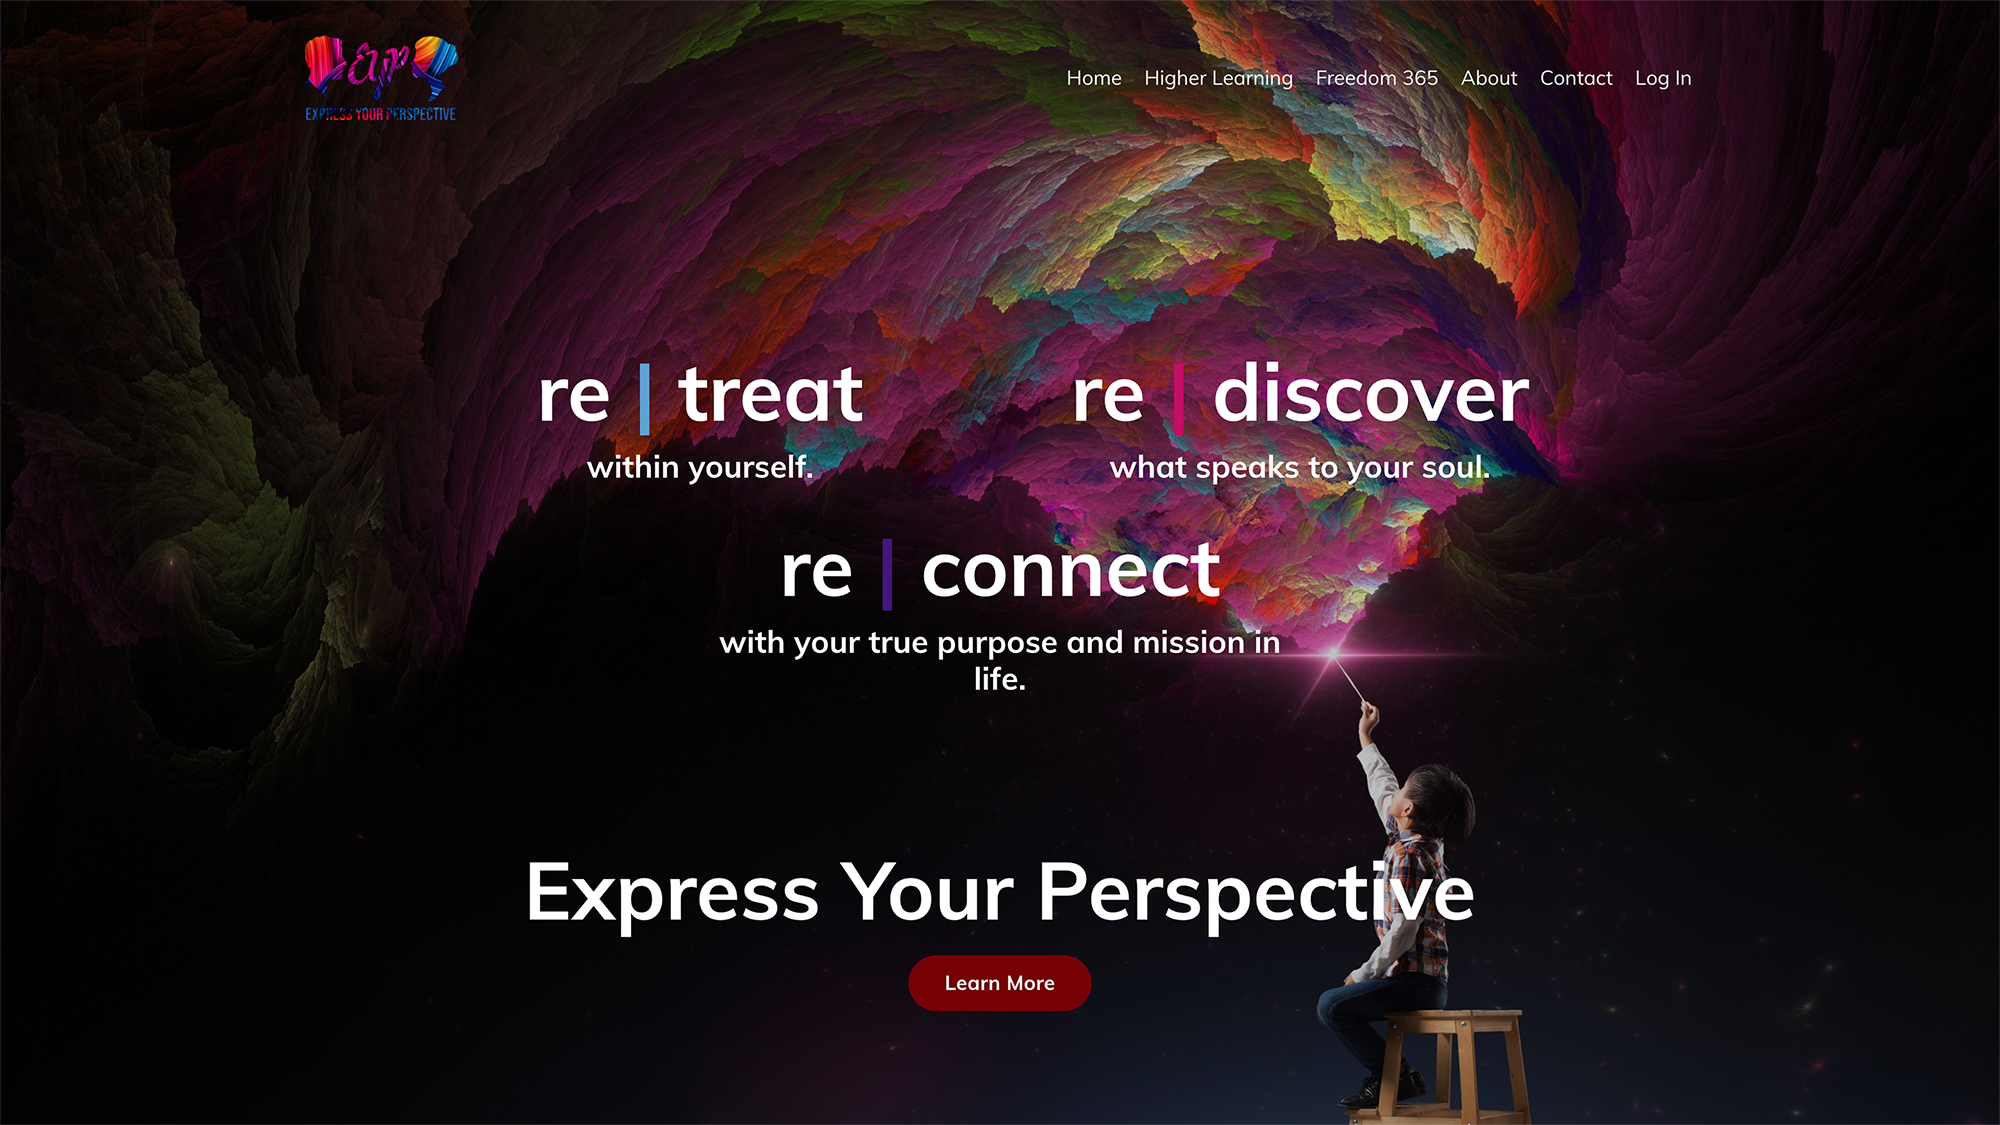 Wed Design and Content Done for Express Your Perspective